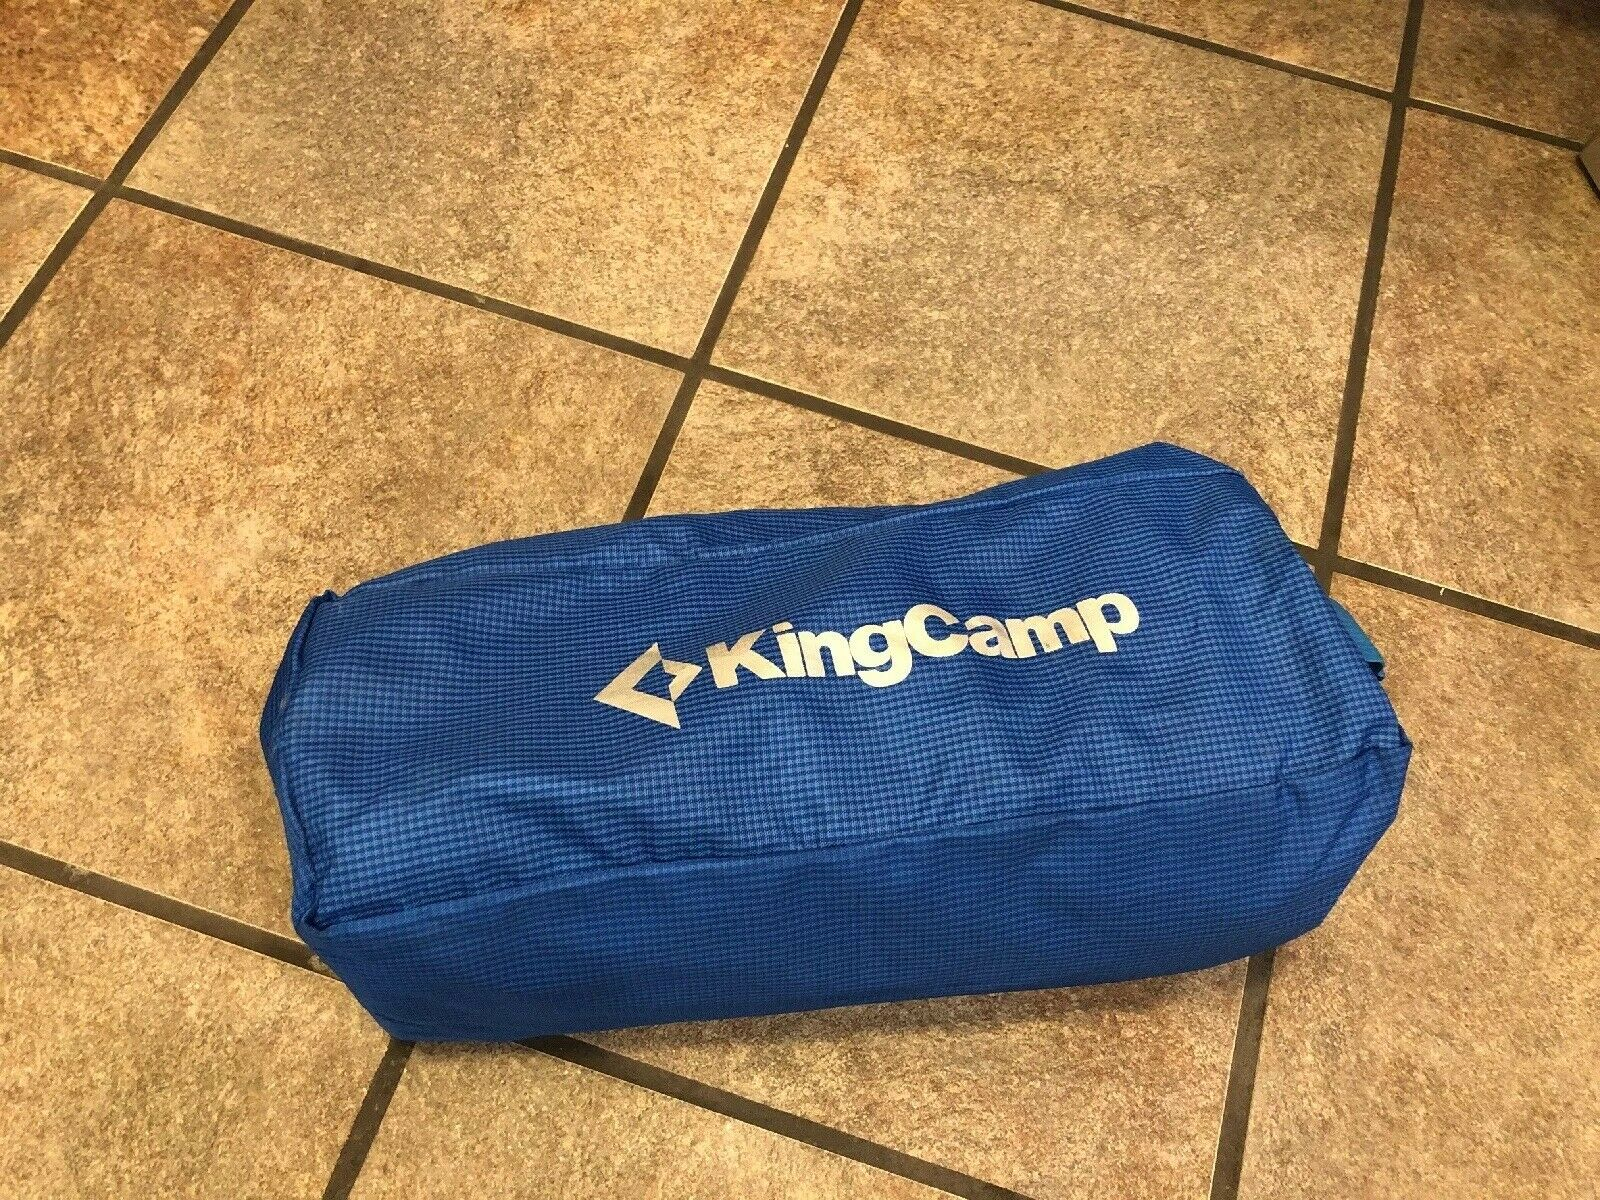 KingCamp  Ultralight Folding Camping Tent Cot - PARTS ONLY see Description  hot sports